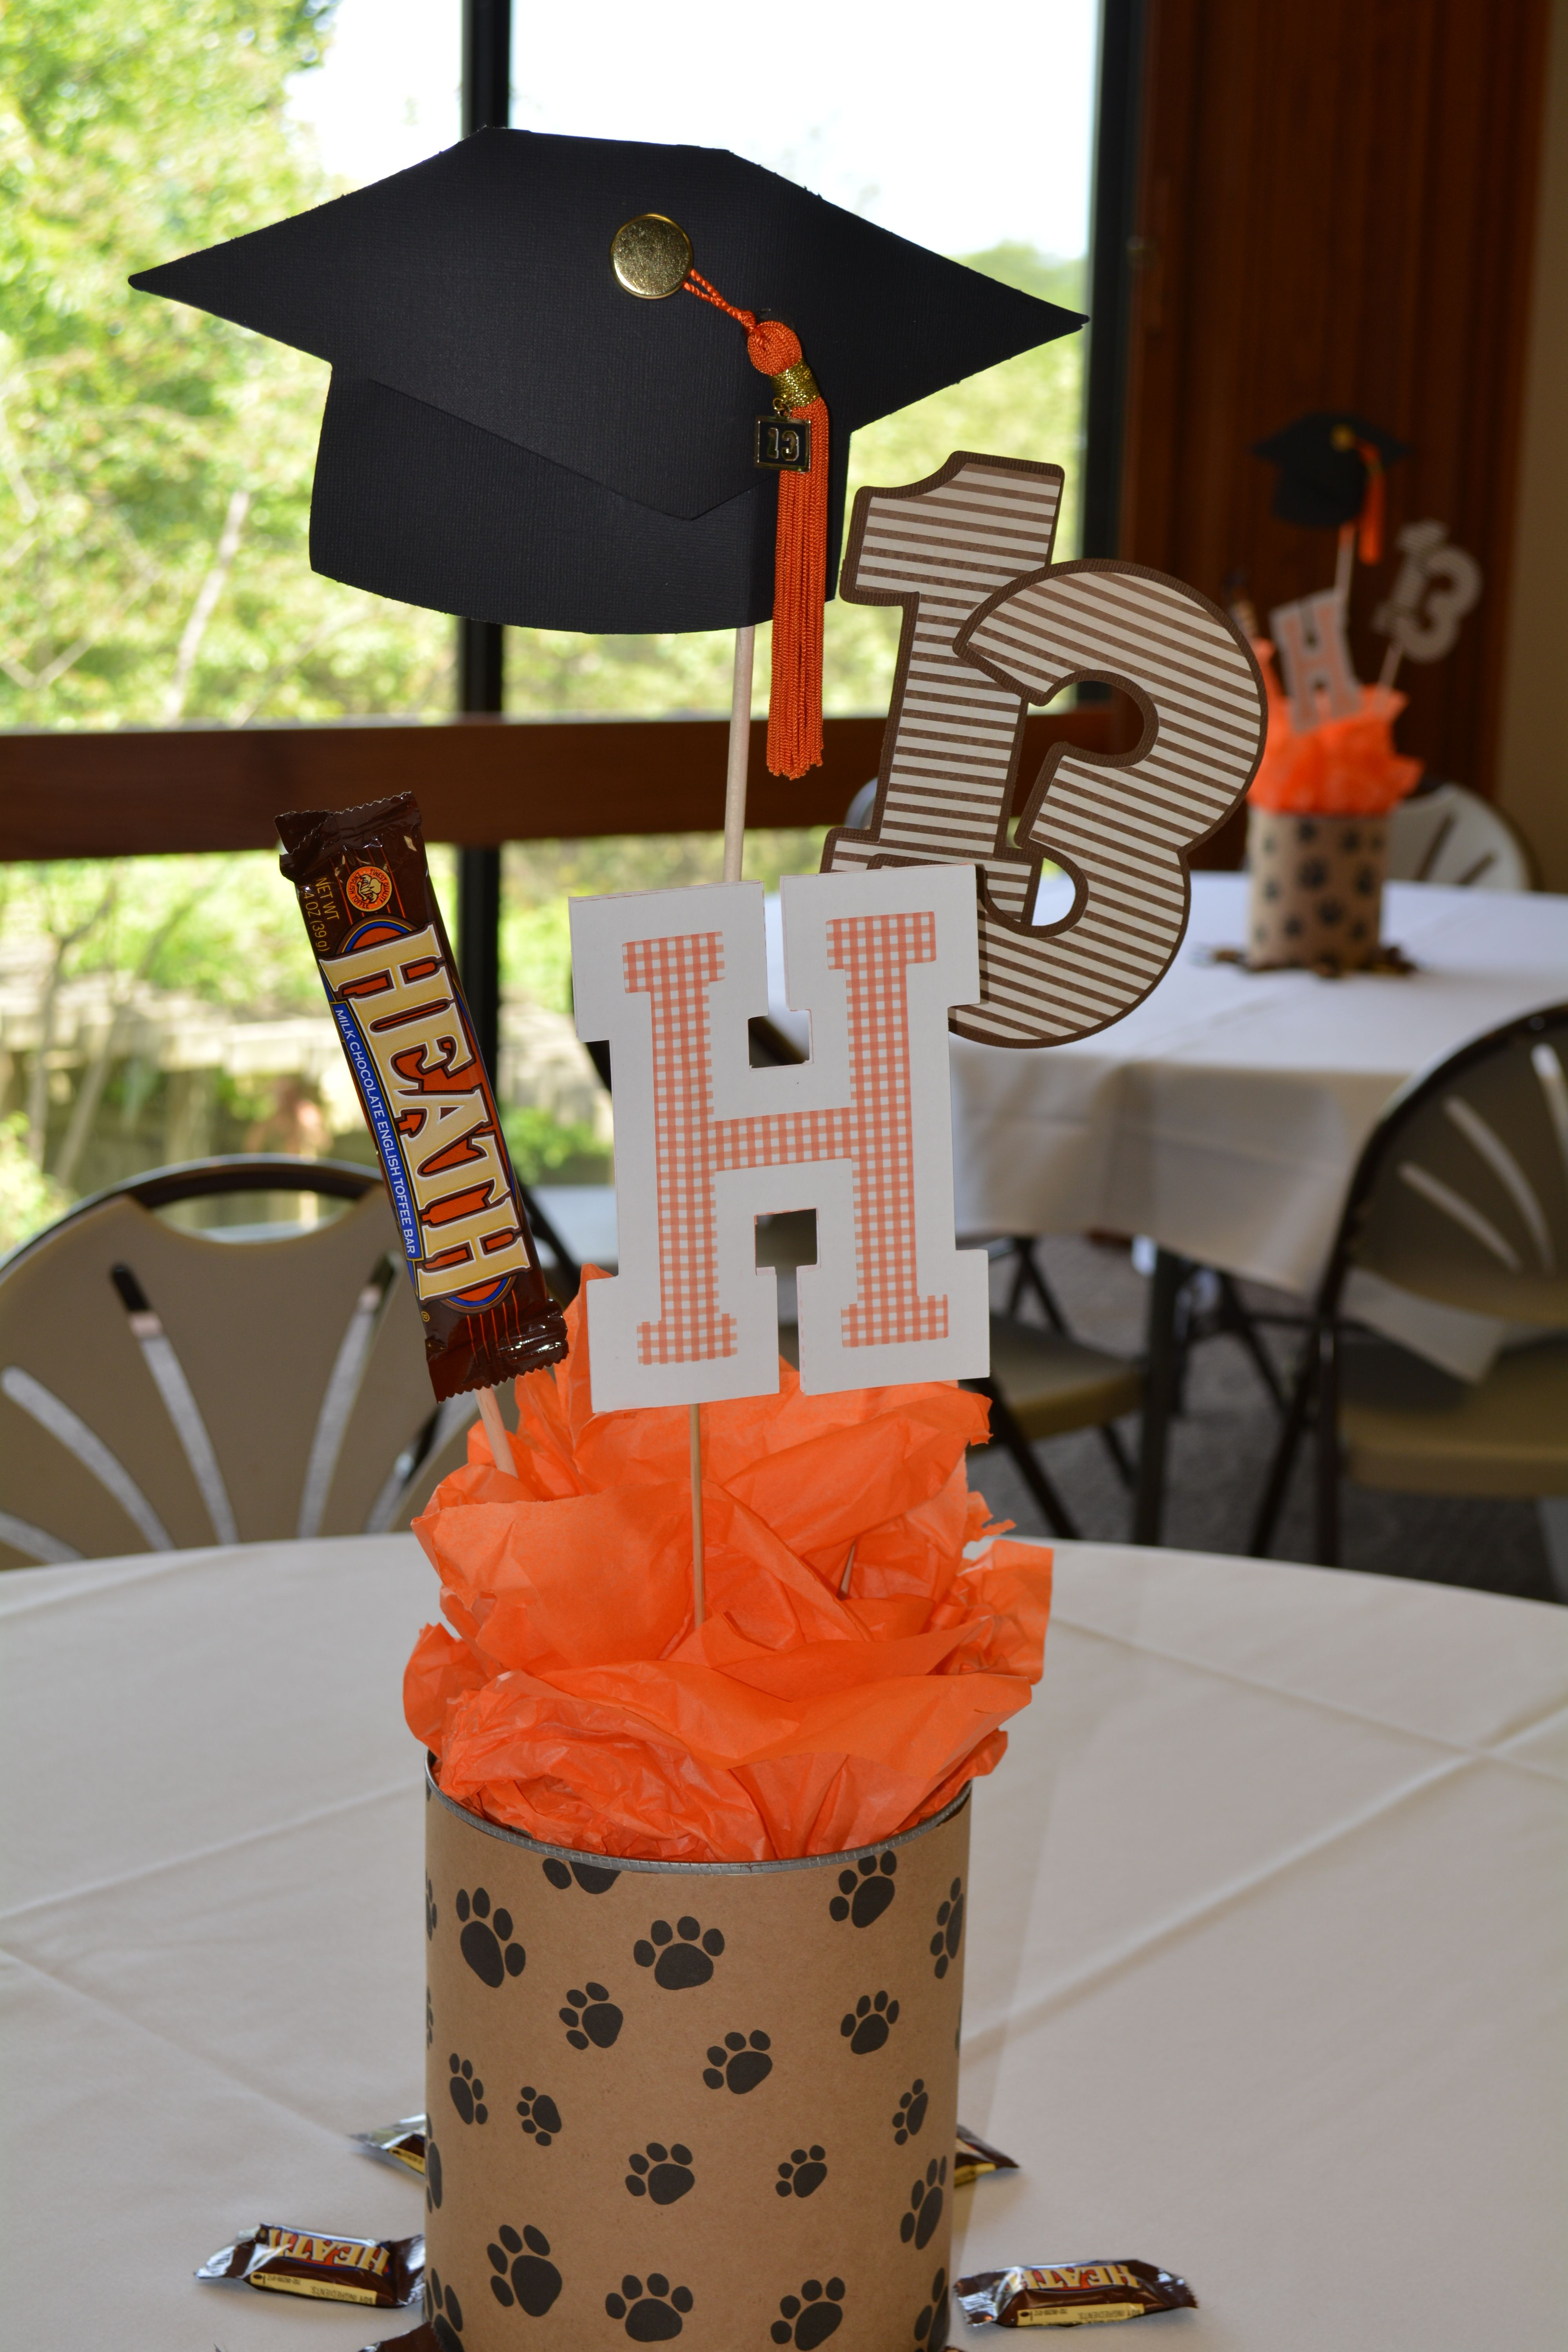 graduation table centerpieces with cricut die cuts jolee 39 s tassle and kraft paw print wrapping. Black Bedroom Furniture Sets. Home Design Ideas